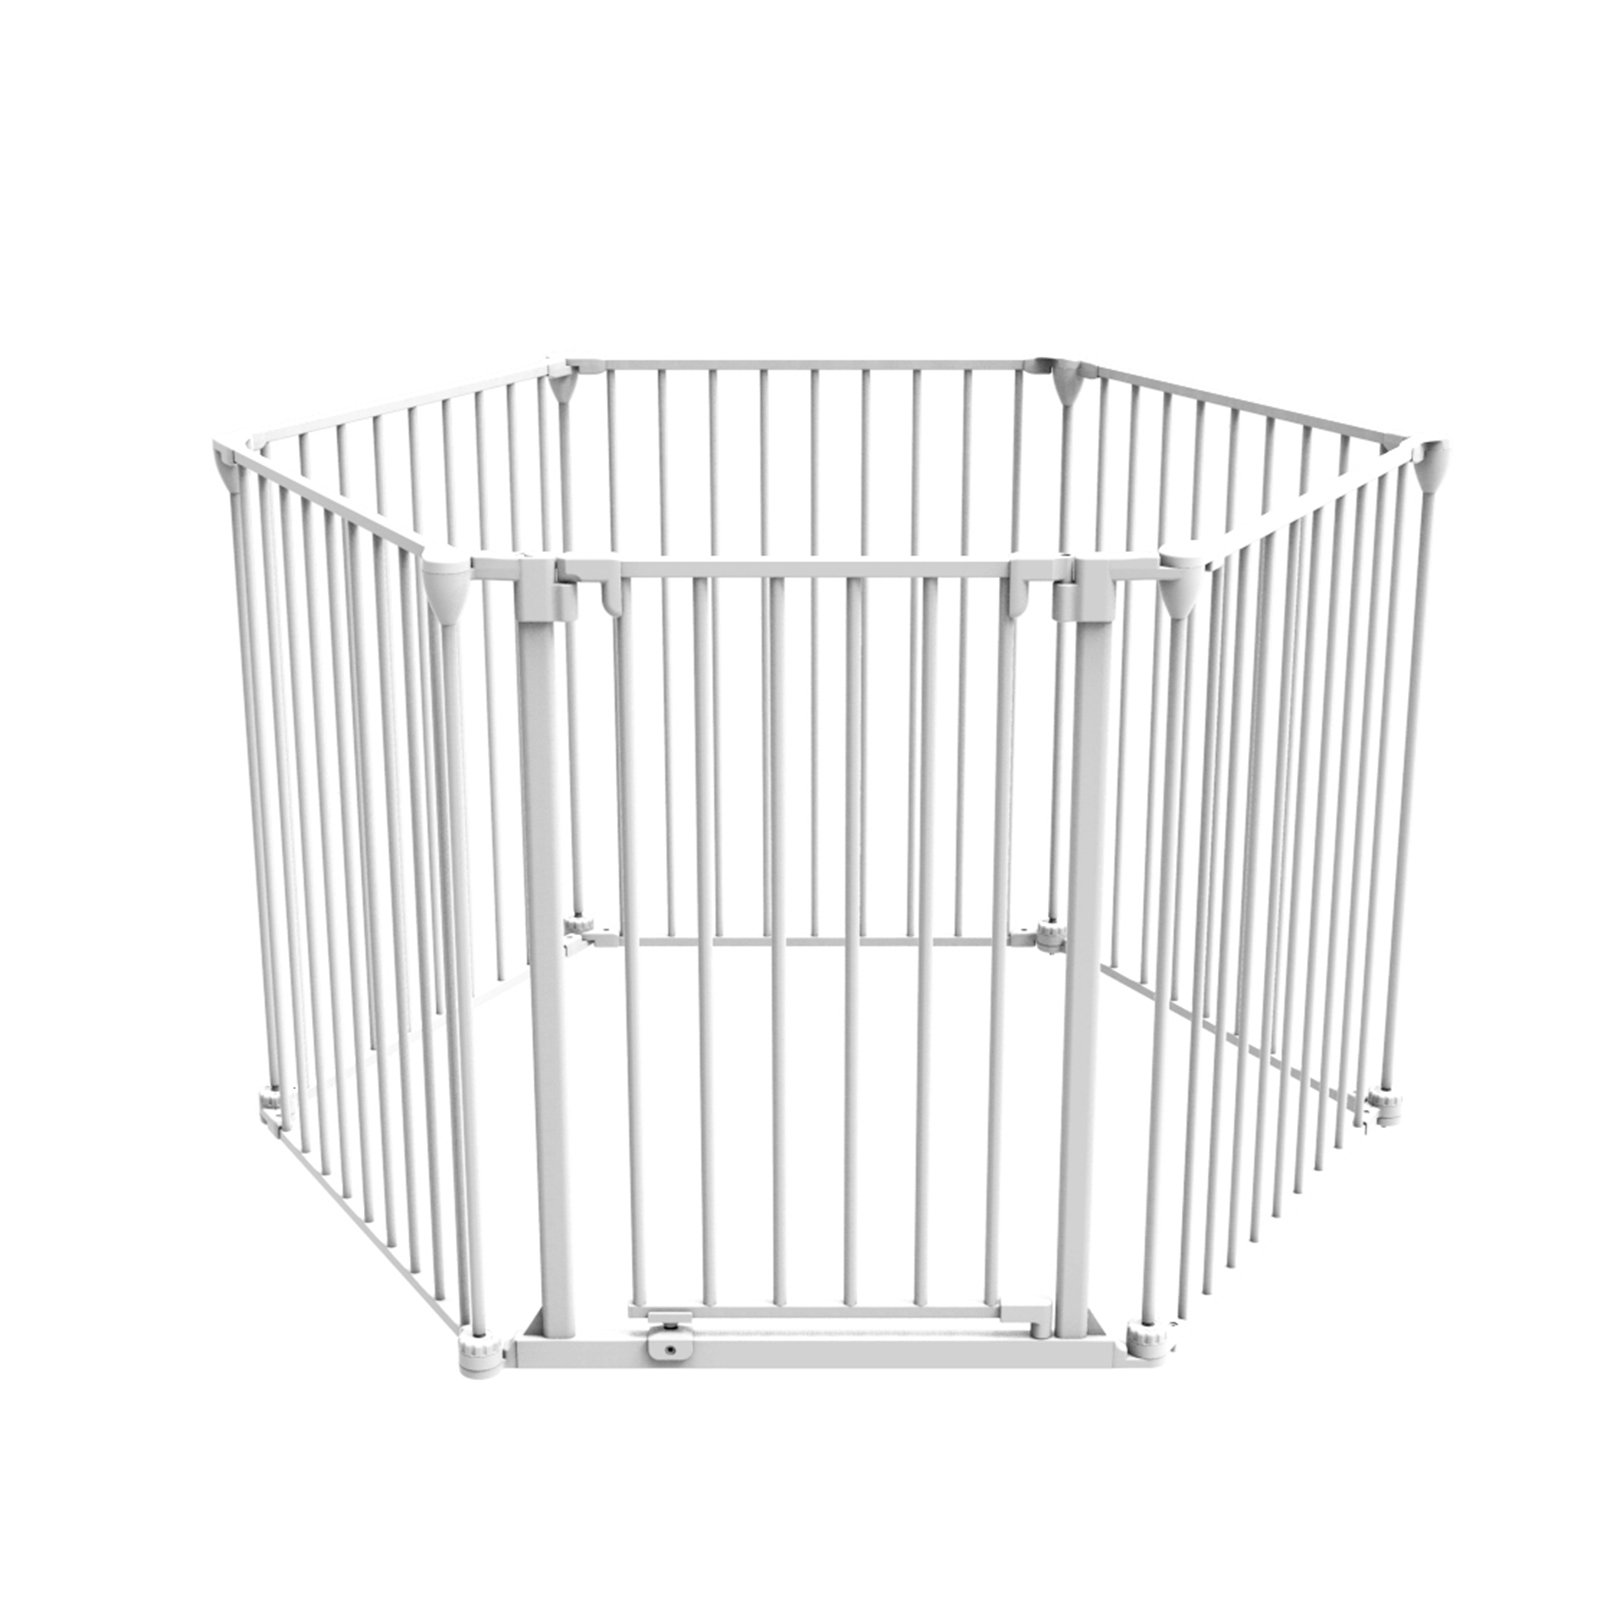 3 in 1 Playpen Barrier 6 Panel, White, Large